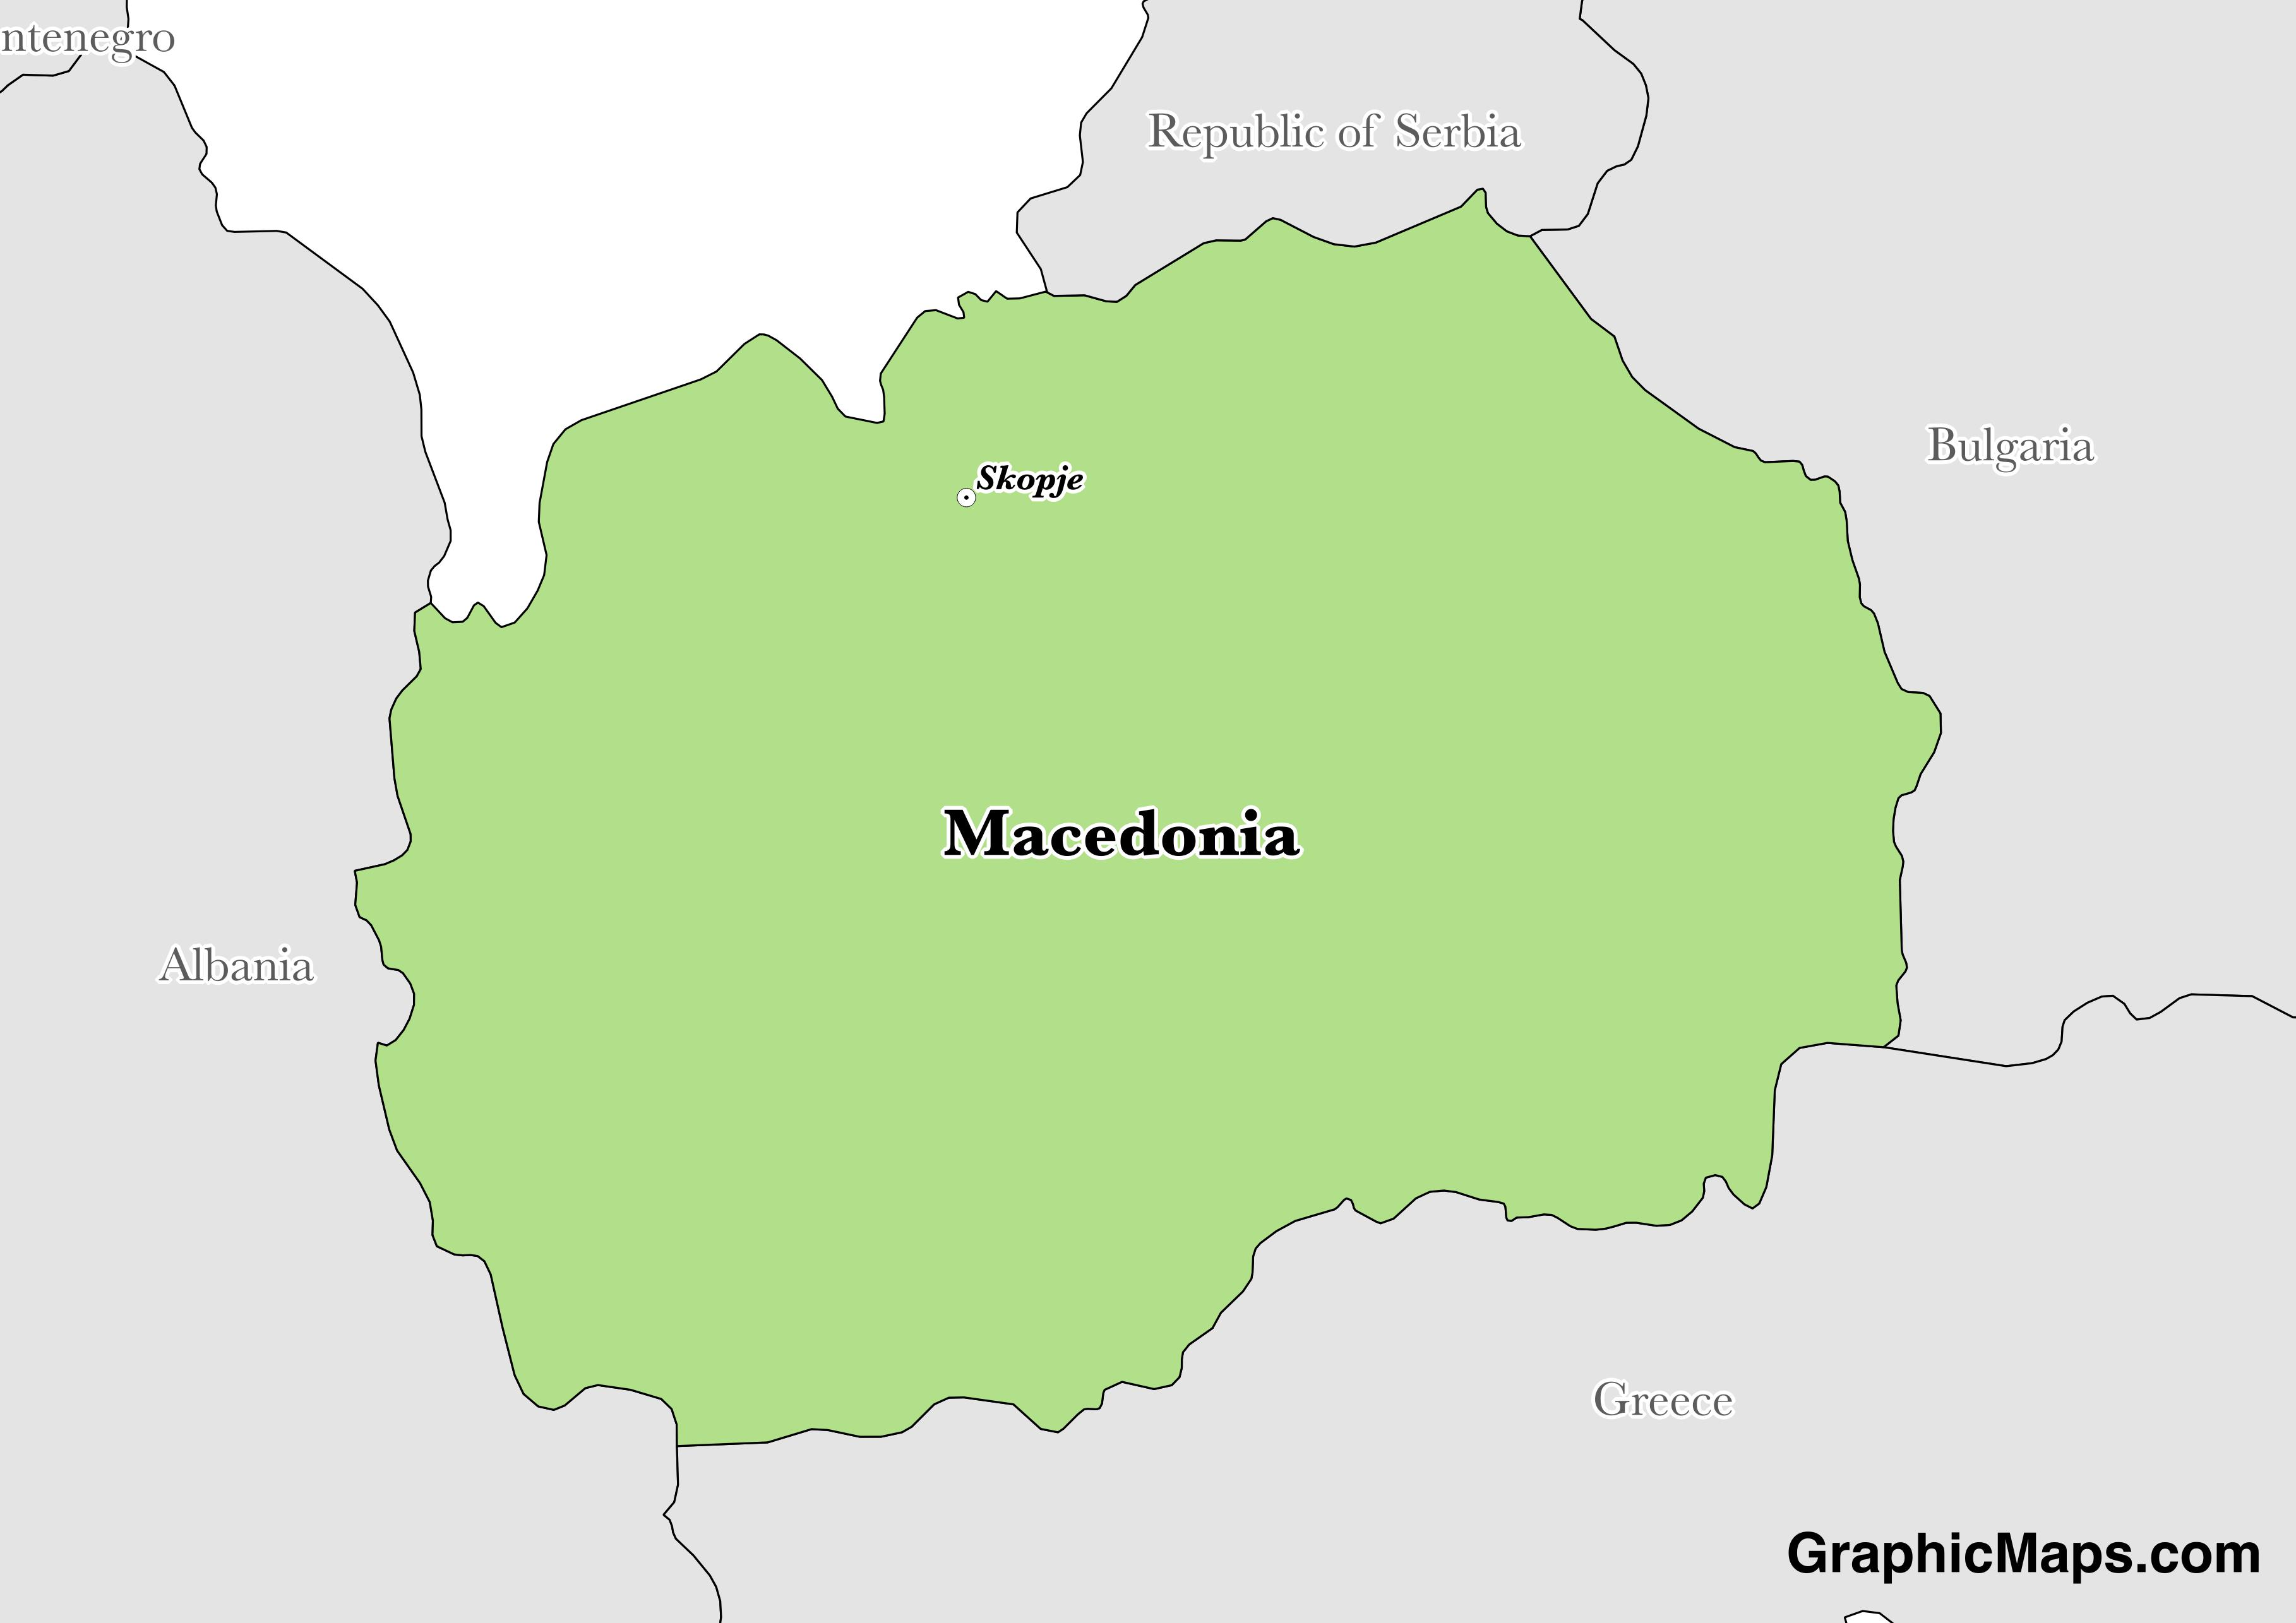 Map showing the location of Macedonia